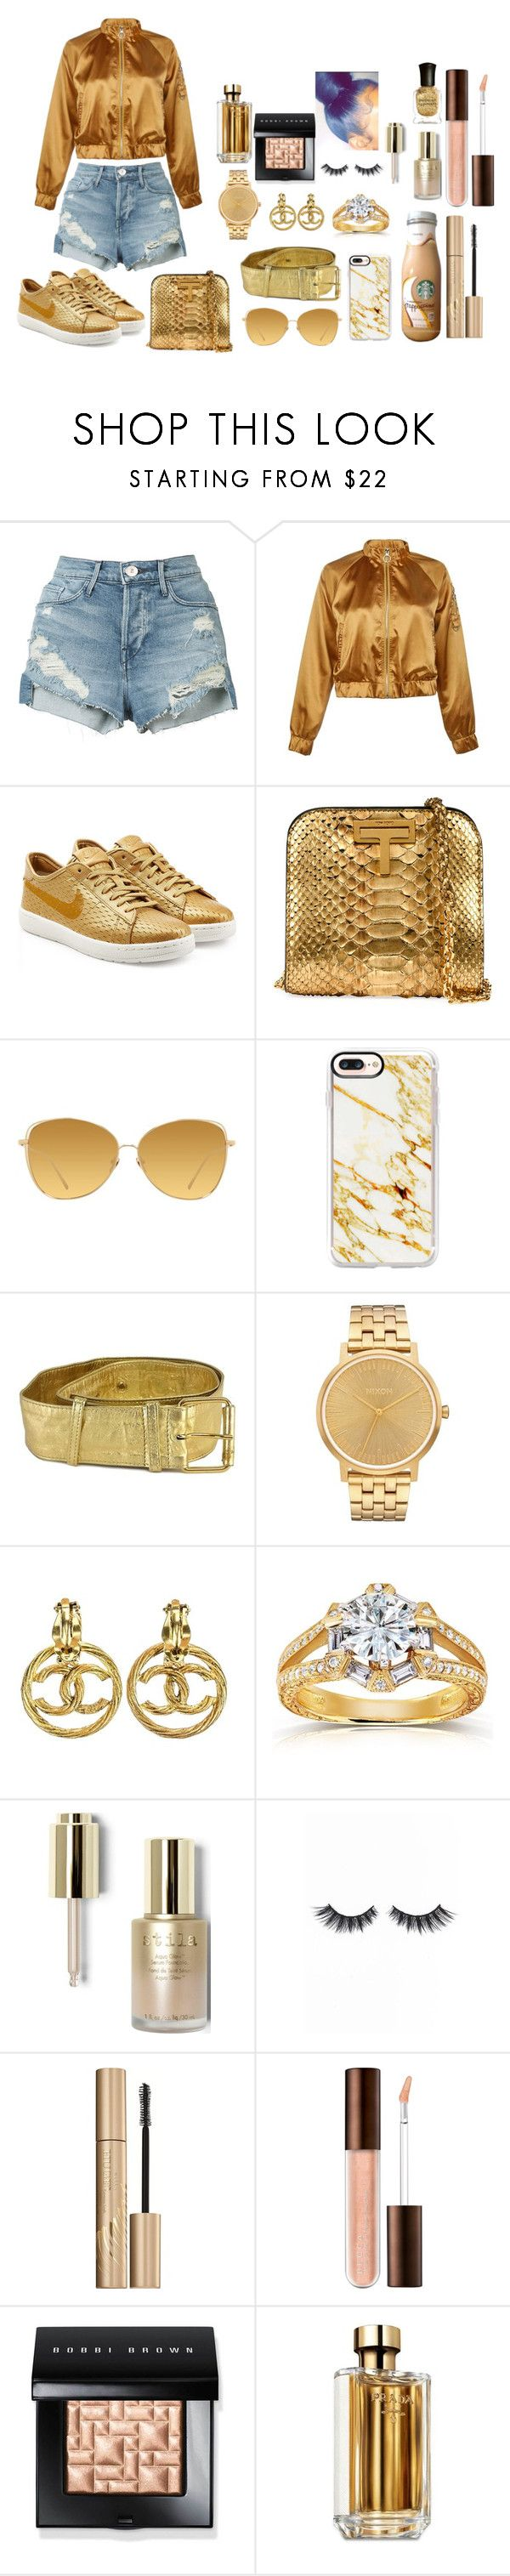 """""""Untitled #63"""" by lashayboss-luv on Polyvore featuring 3x1, Boohoo, NIKE, Linda Farrow, Casetify, Moschino, Nixon, Annello, Stila and Violet Voss"""